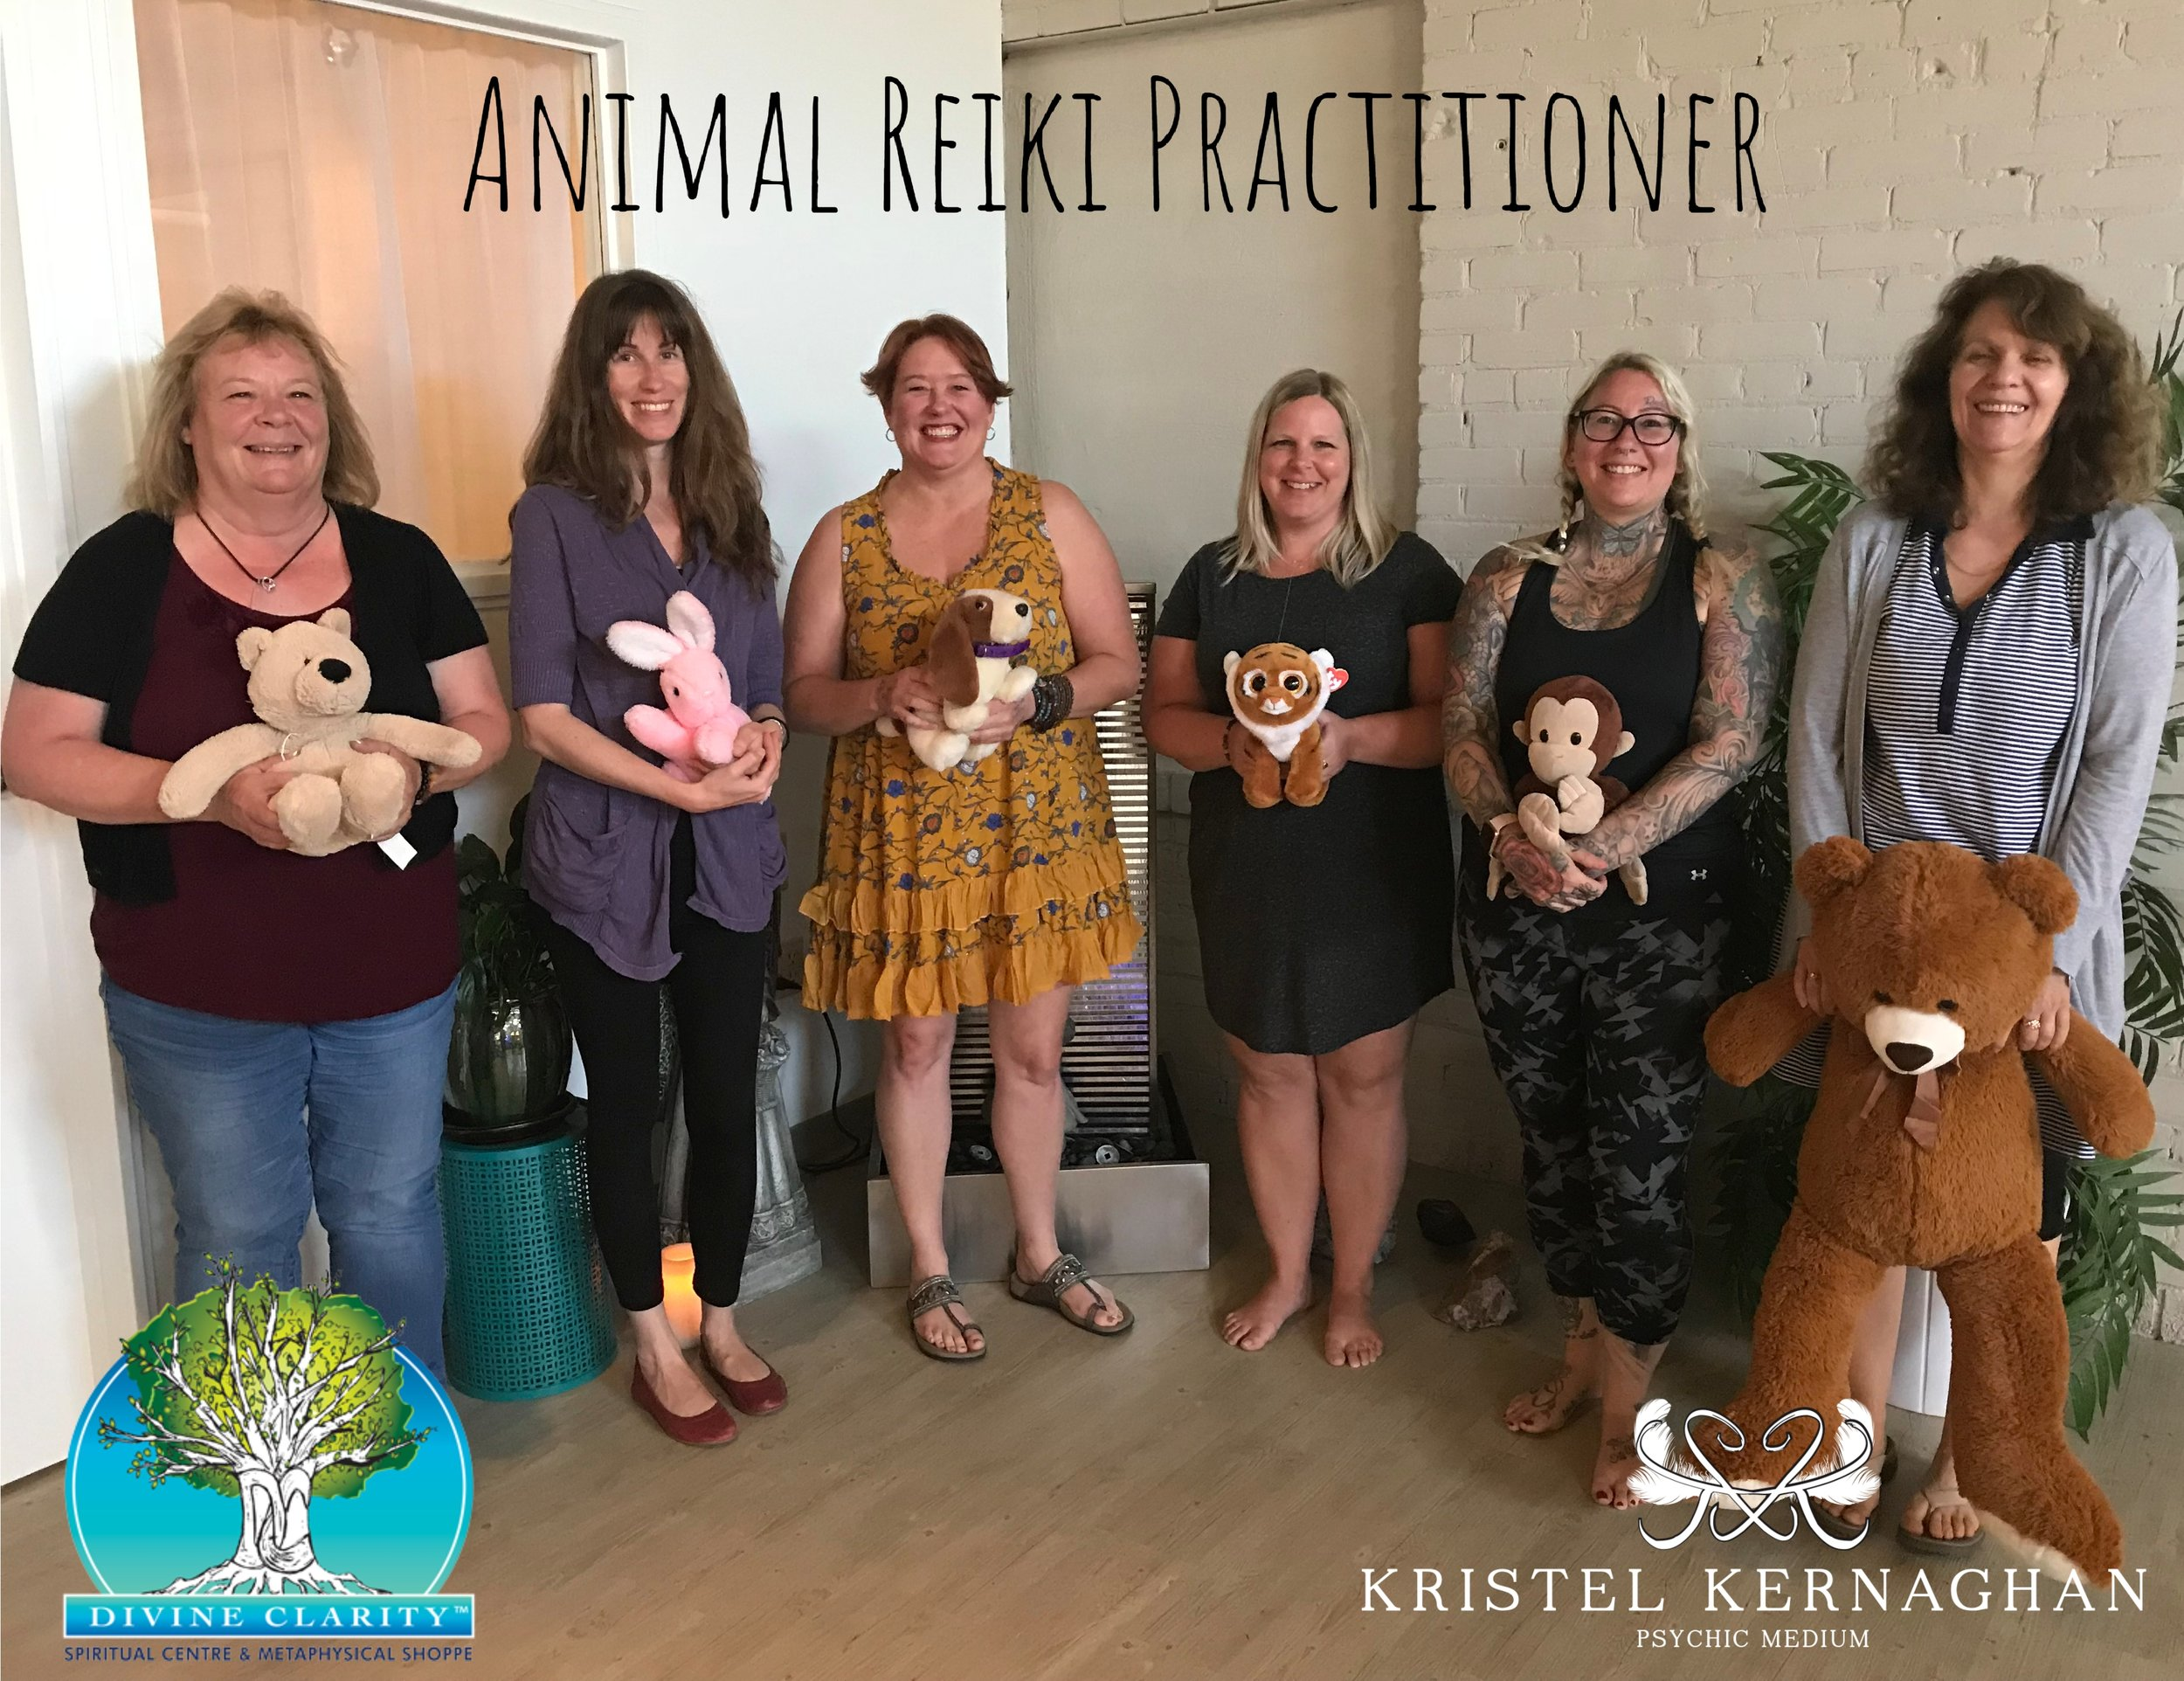 Animal Reiki Practitioner (1).jpg